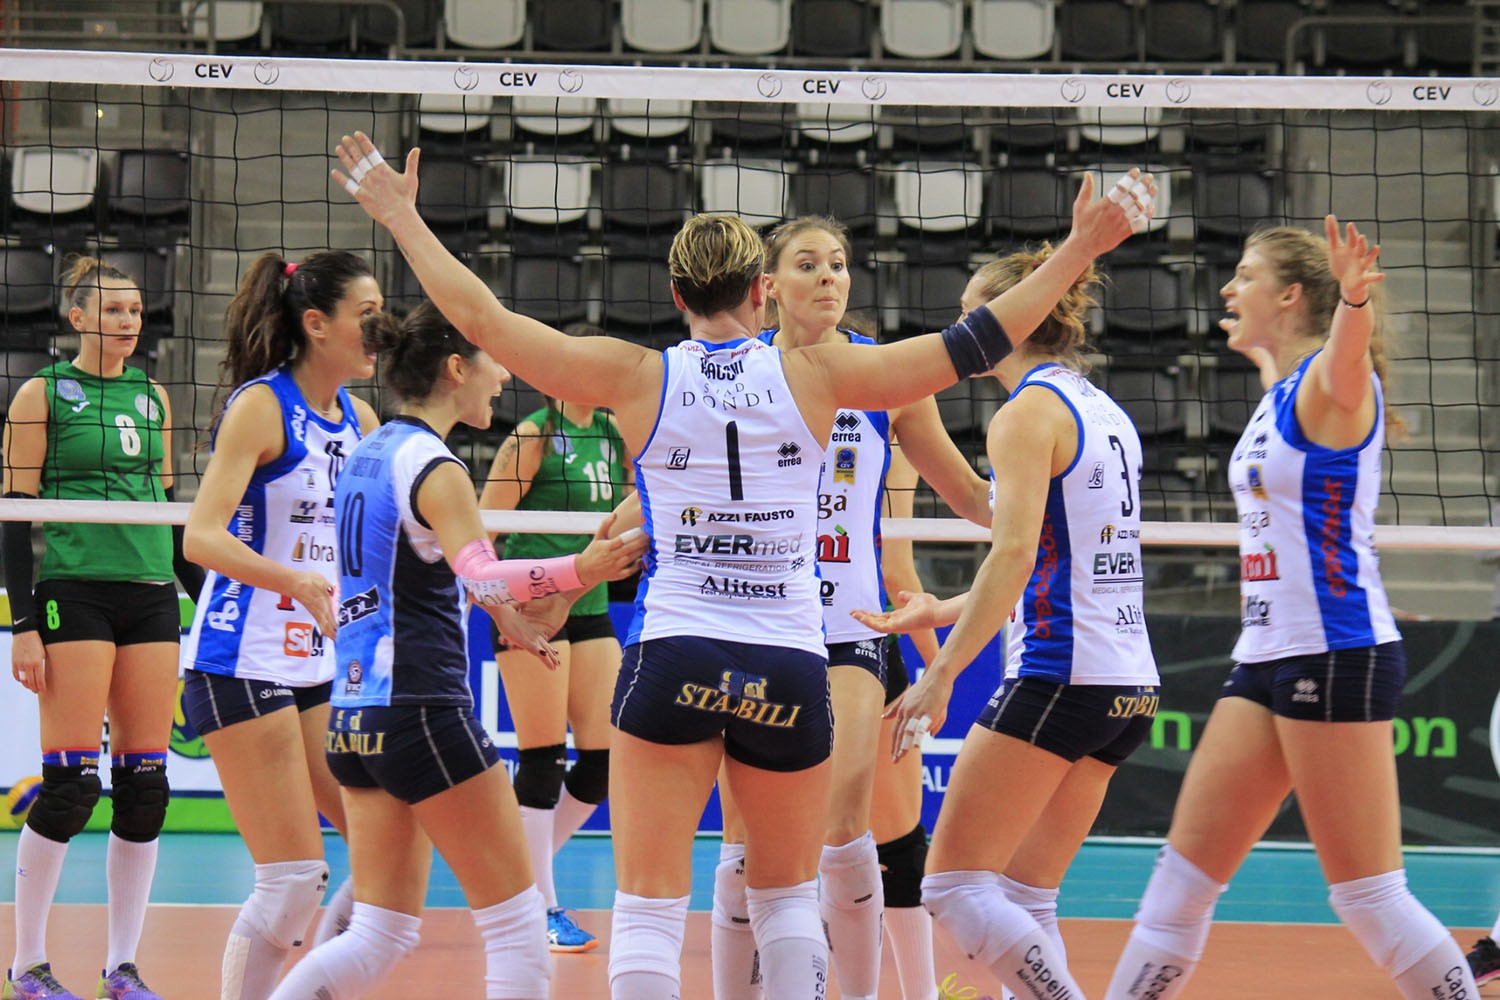 Pomì Casalmaggiore is through to the quarter finals of the CEV Cup!